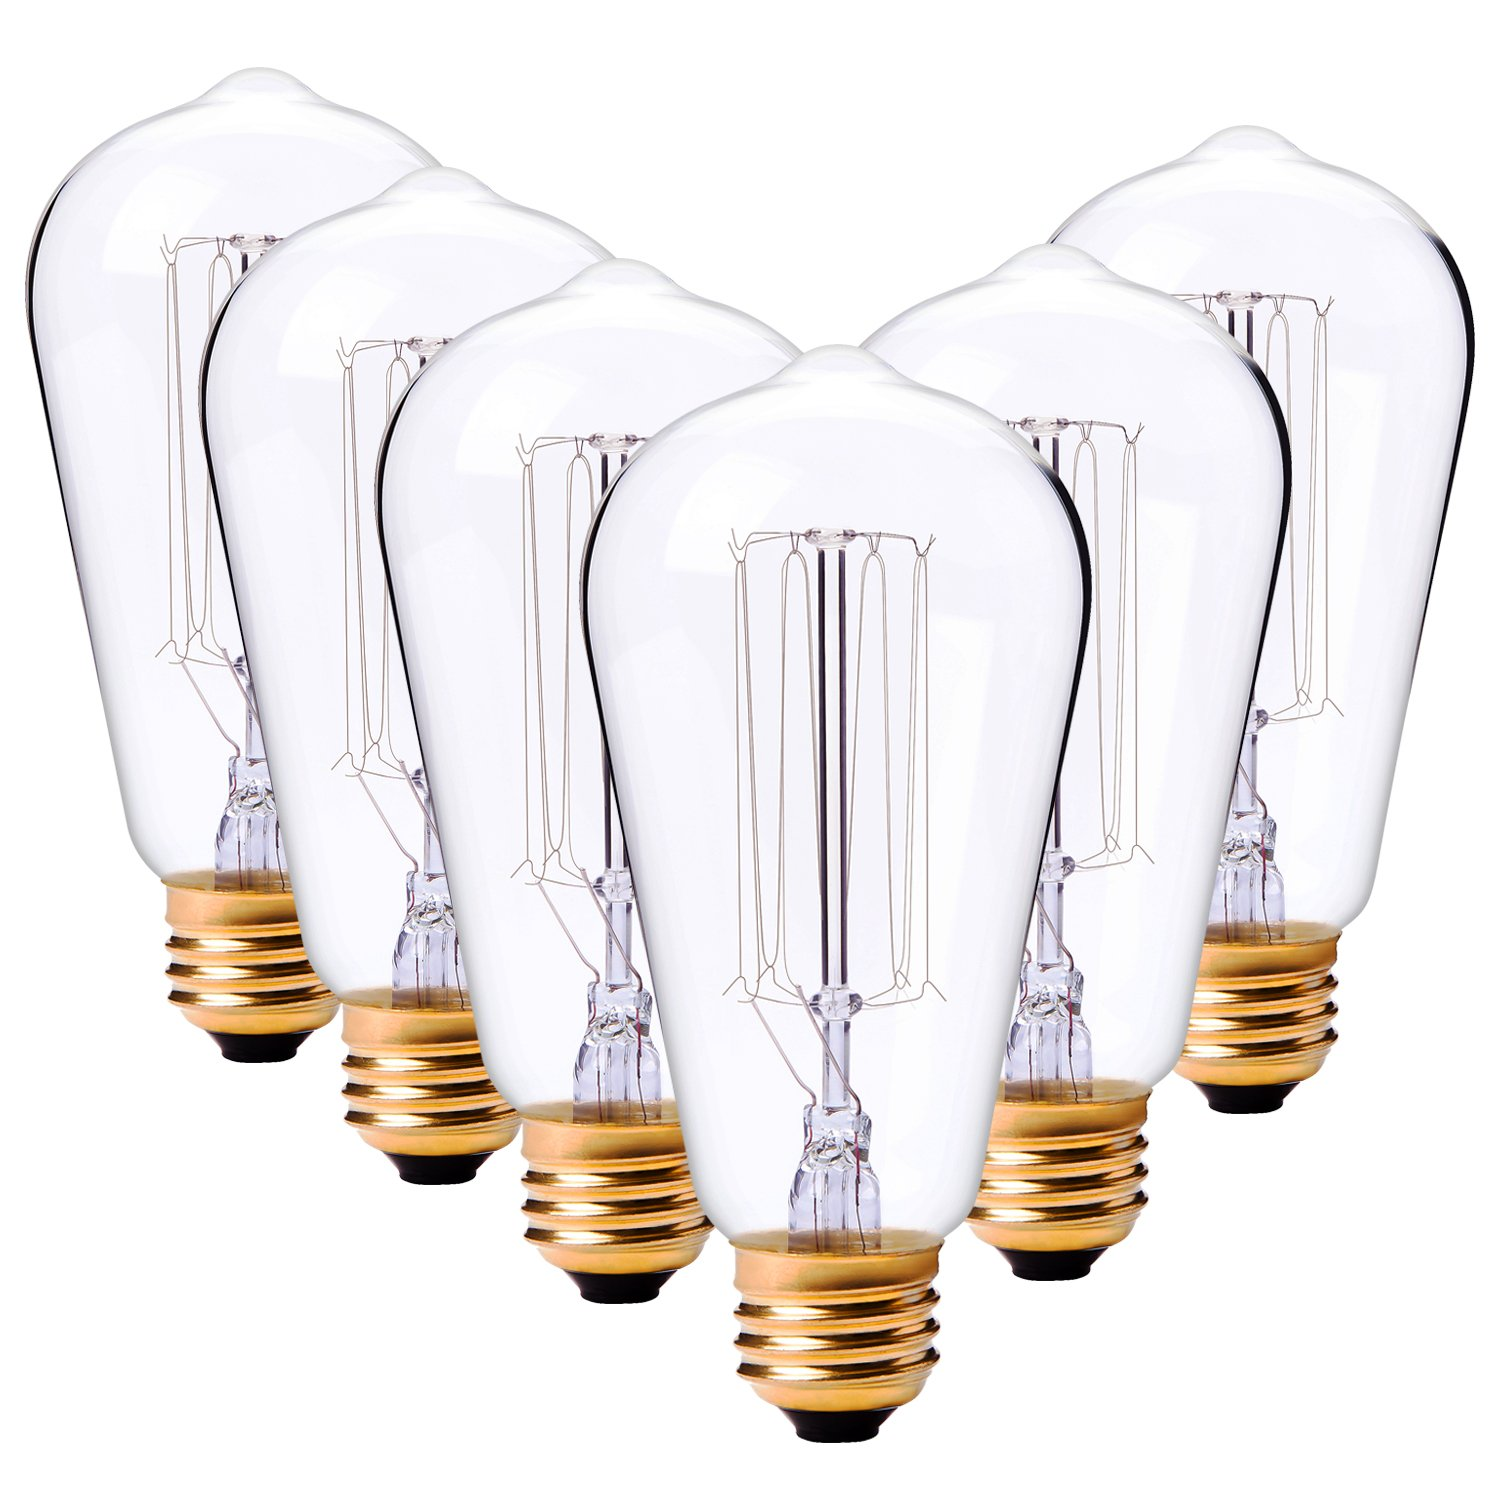 LDUSAHOME Vintage Edison Bulbs 60W Antique Classic Style Squirrel Cage Filament Incandescent Light Bulb E26 Base ST64 120V for Home Lighting Fixtures Lamp's Bulbs Warm Lighting Dim 2700K, 6 Pack LDUSAHOME120